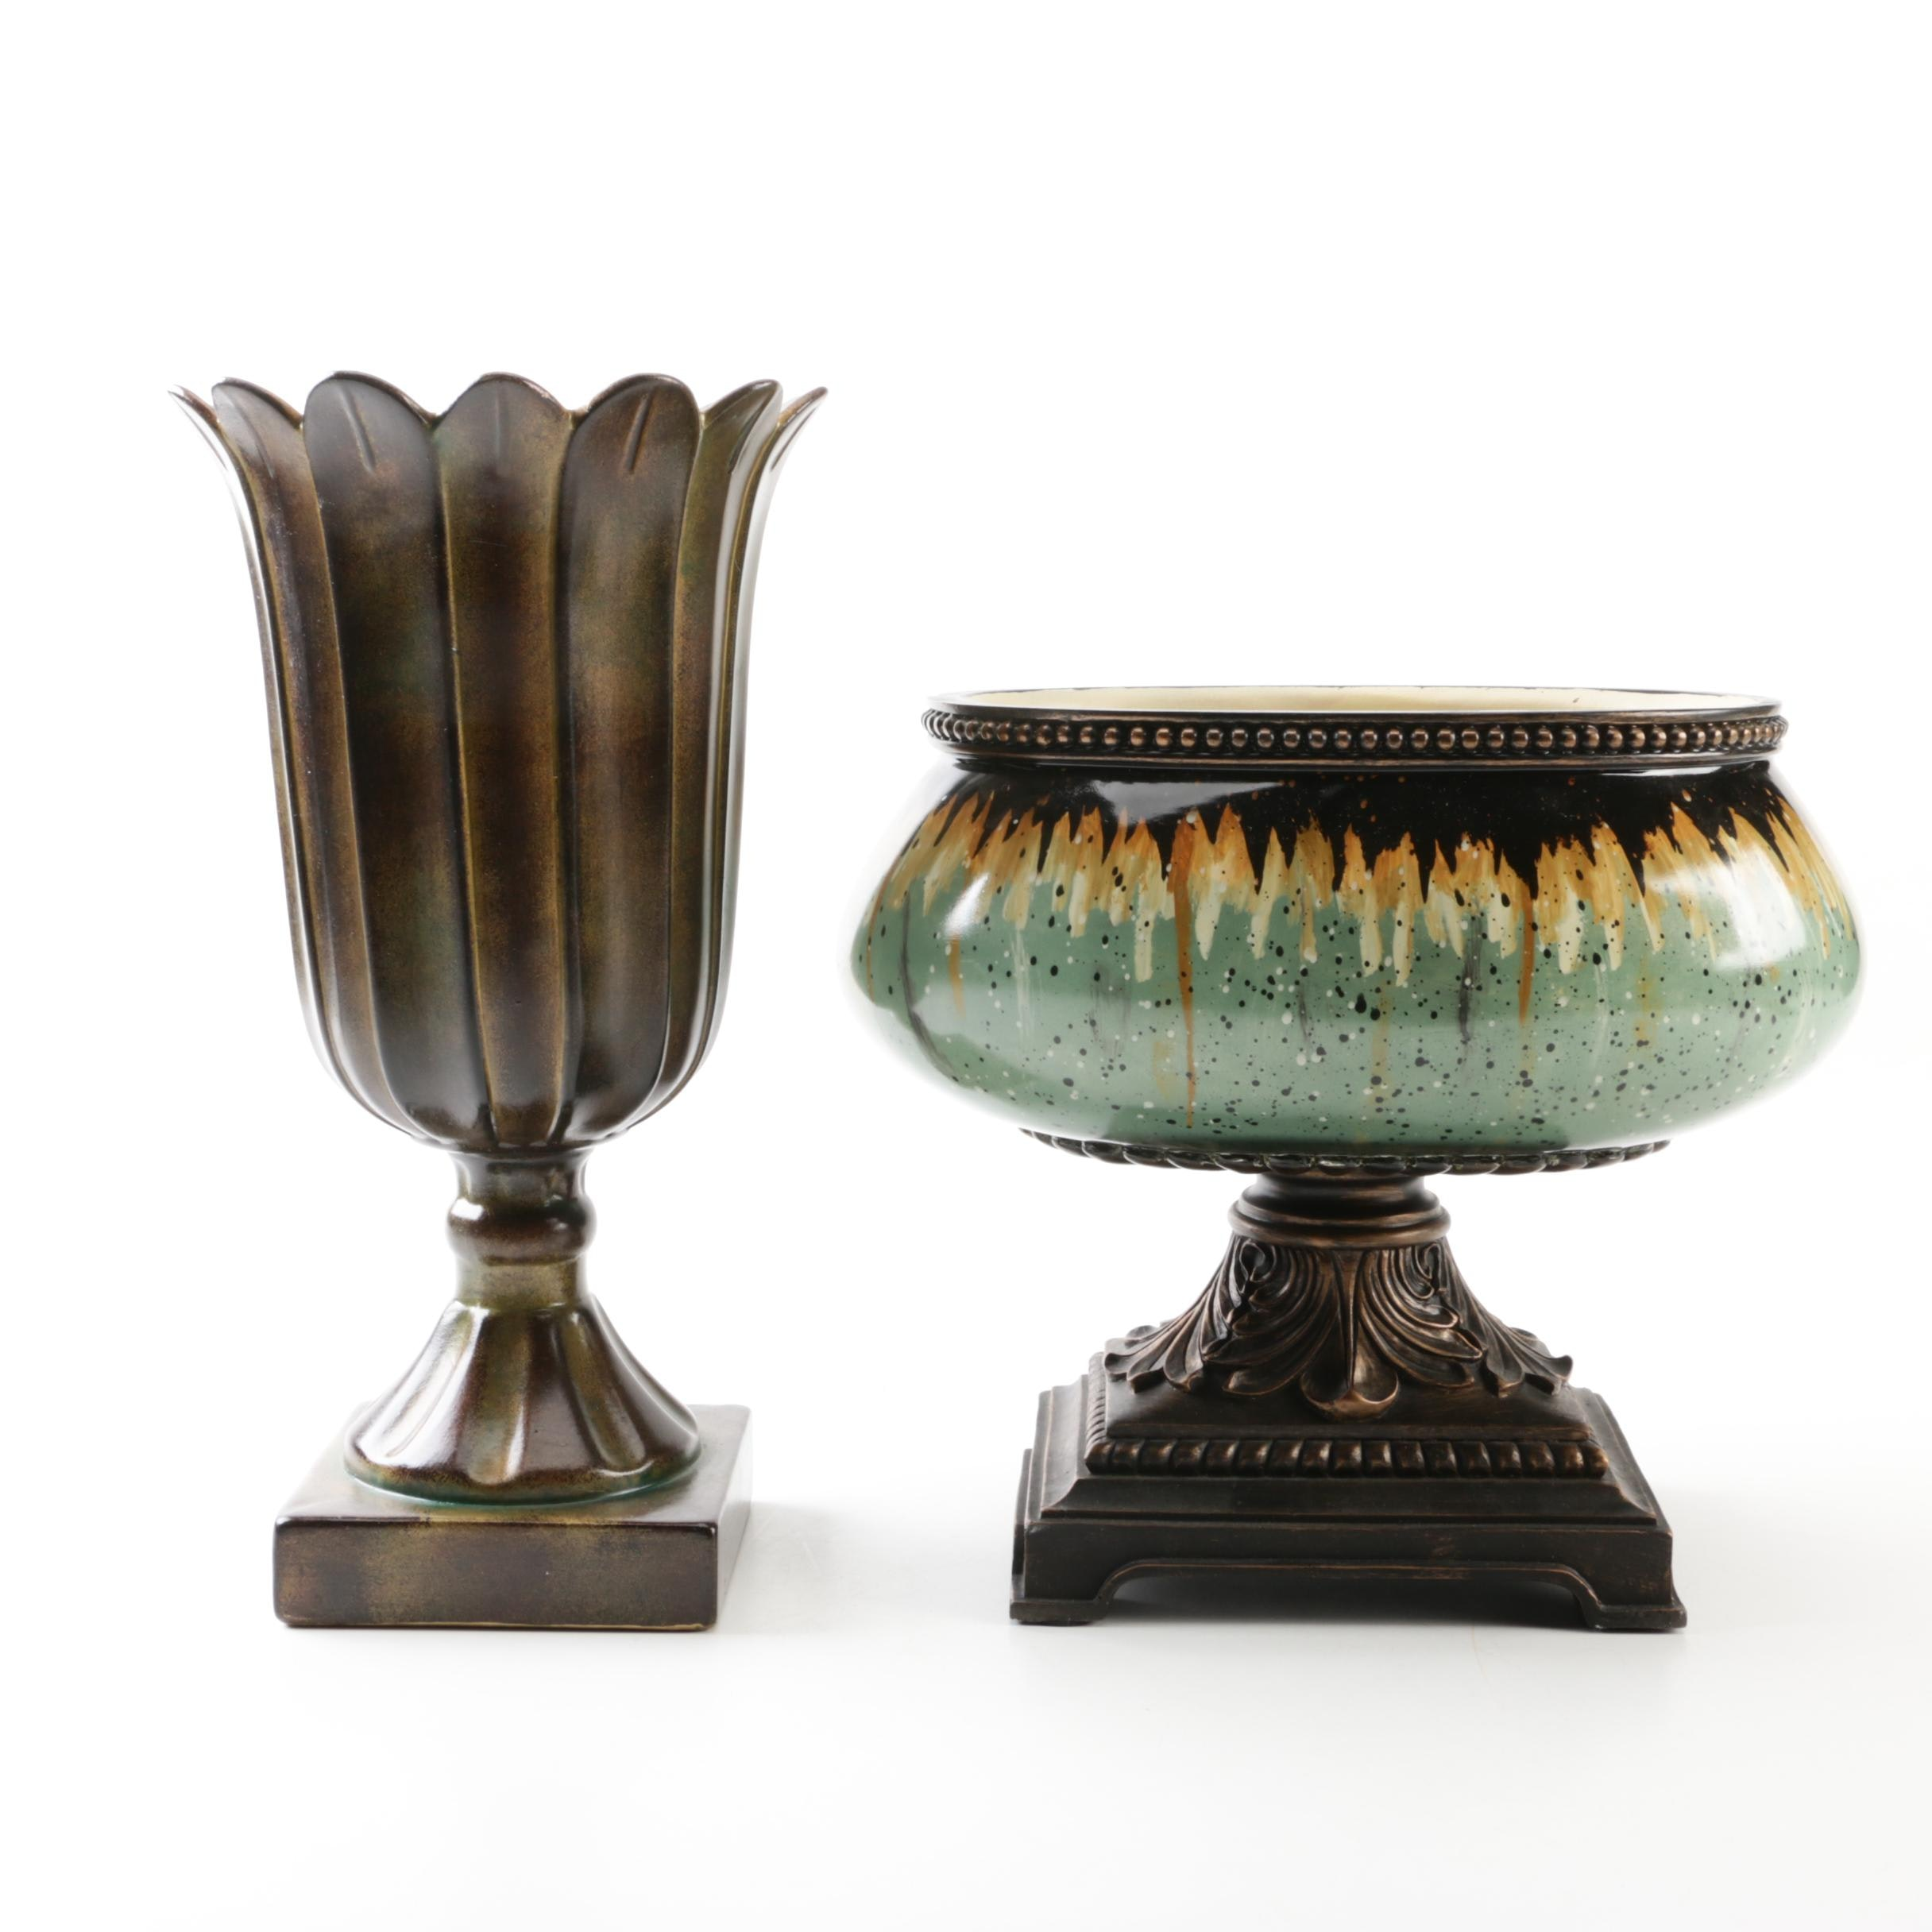 Contemporary Pedestal Vase and Hand-Painted Planter